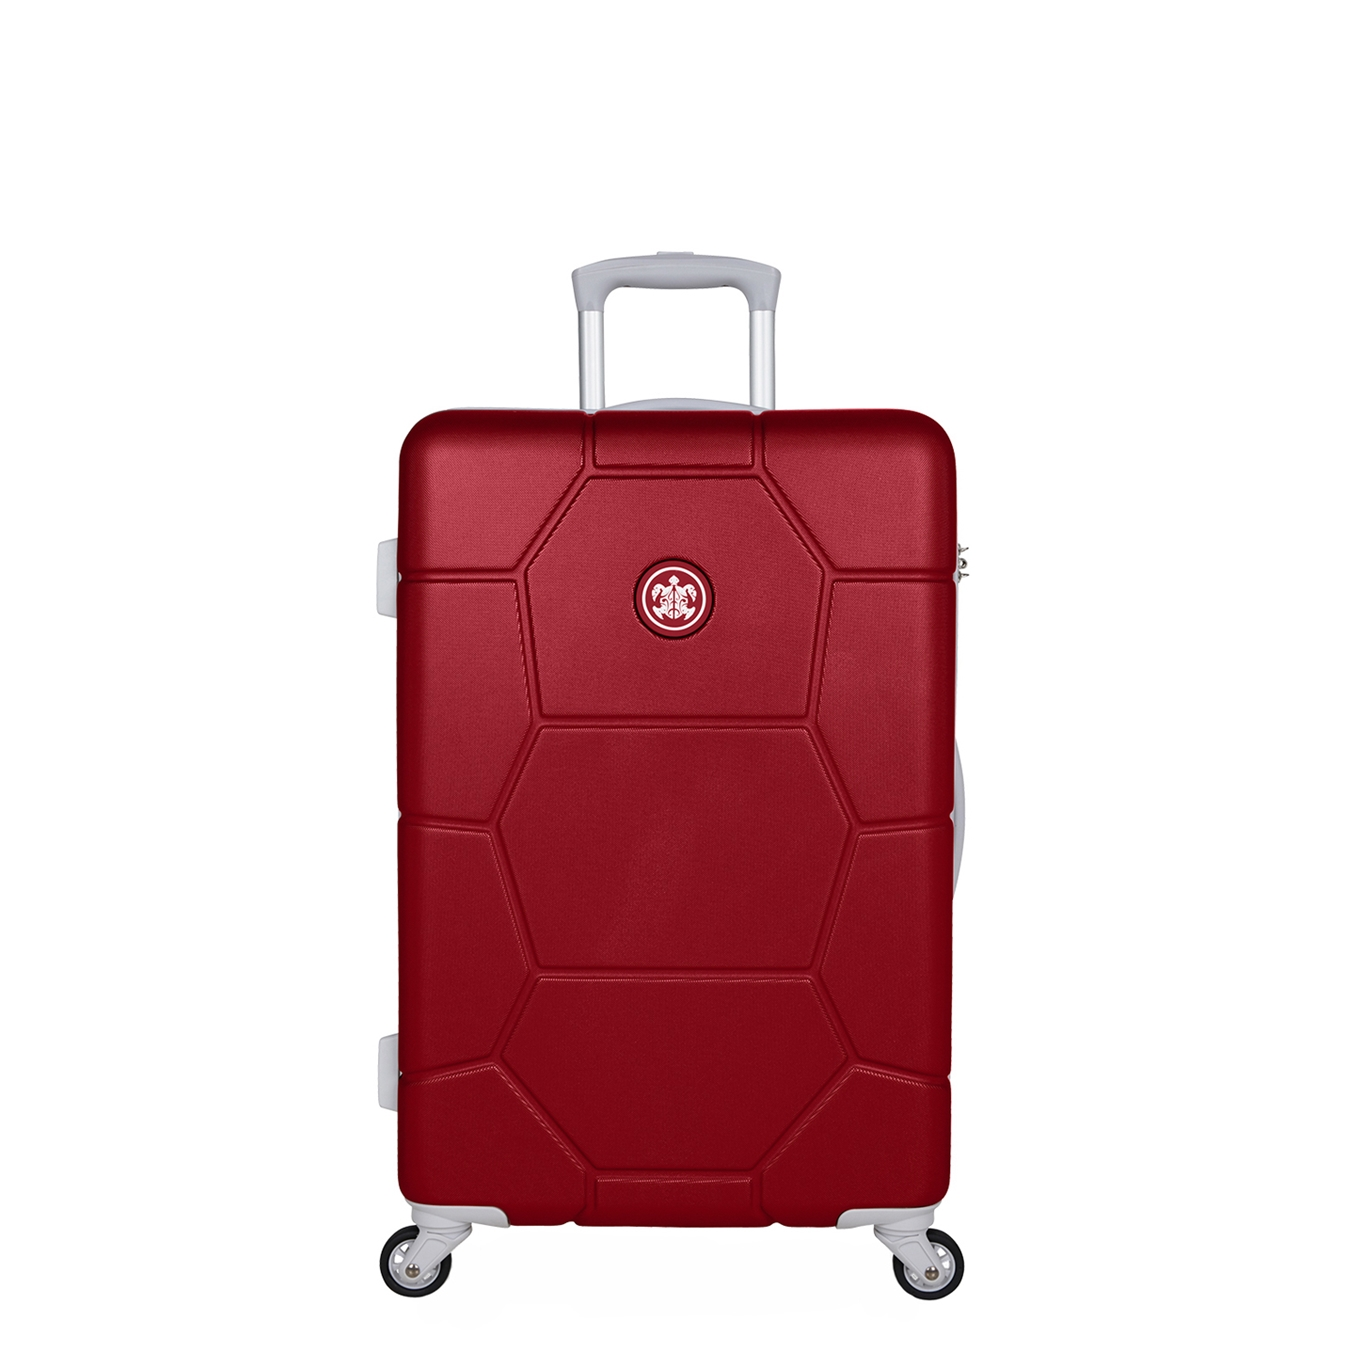 SuitSuit Caretta Trolley 65 red cherry Harde Koffer <br/></noscript><img class=